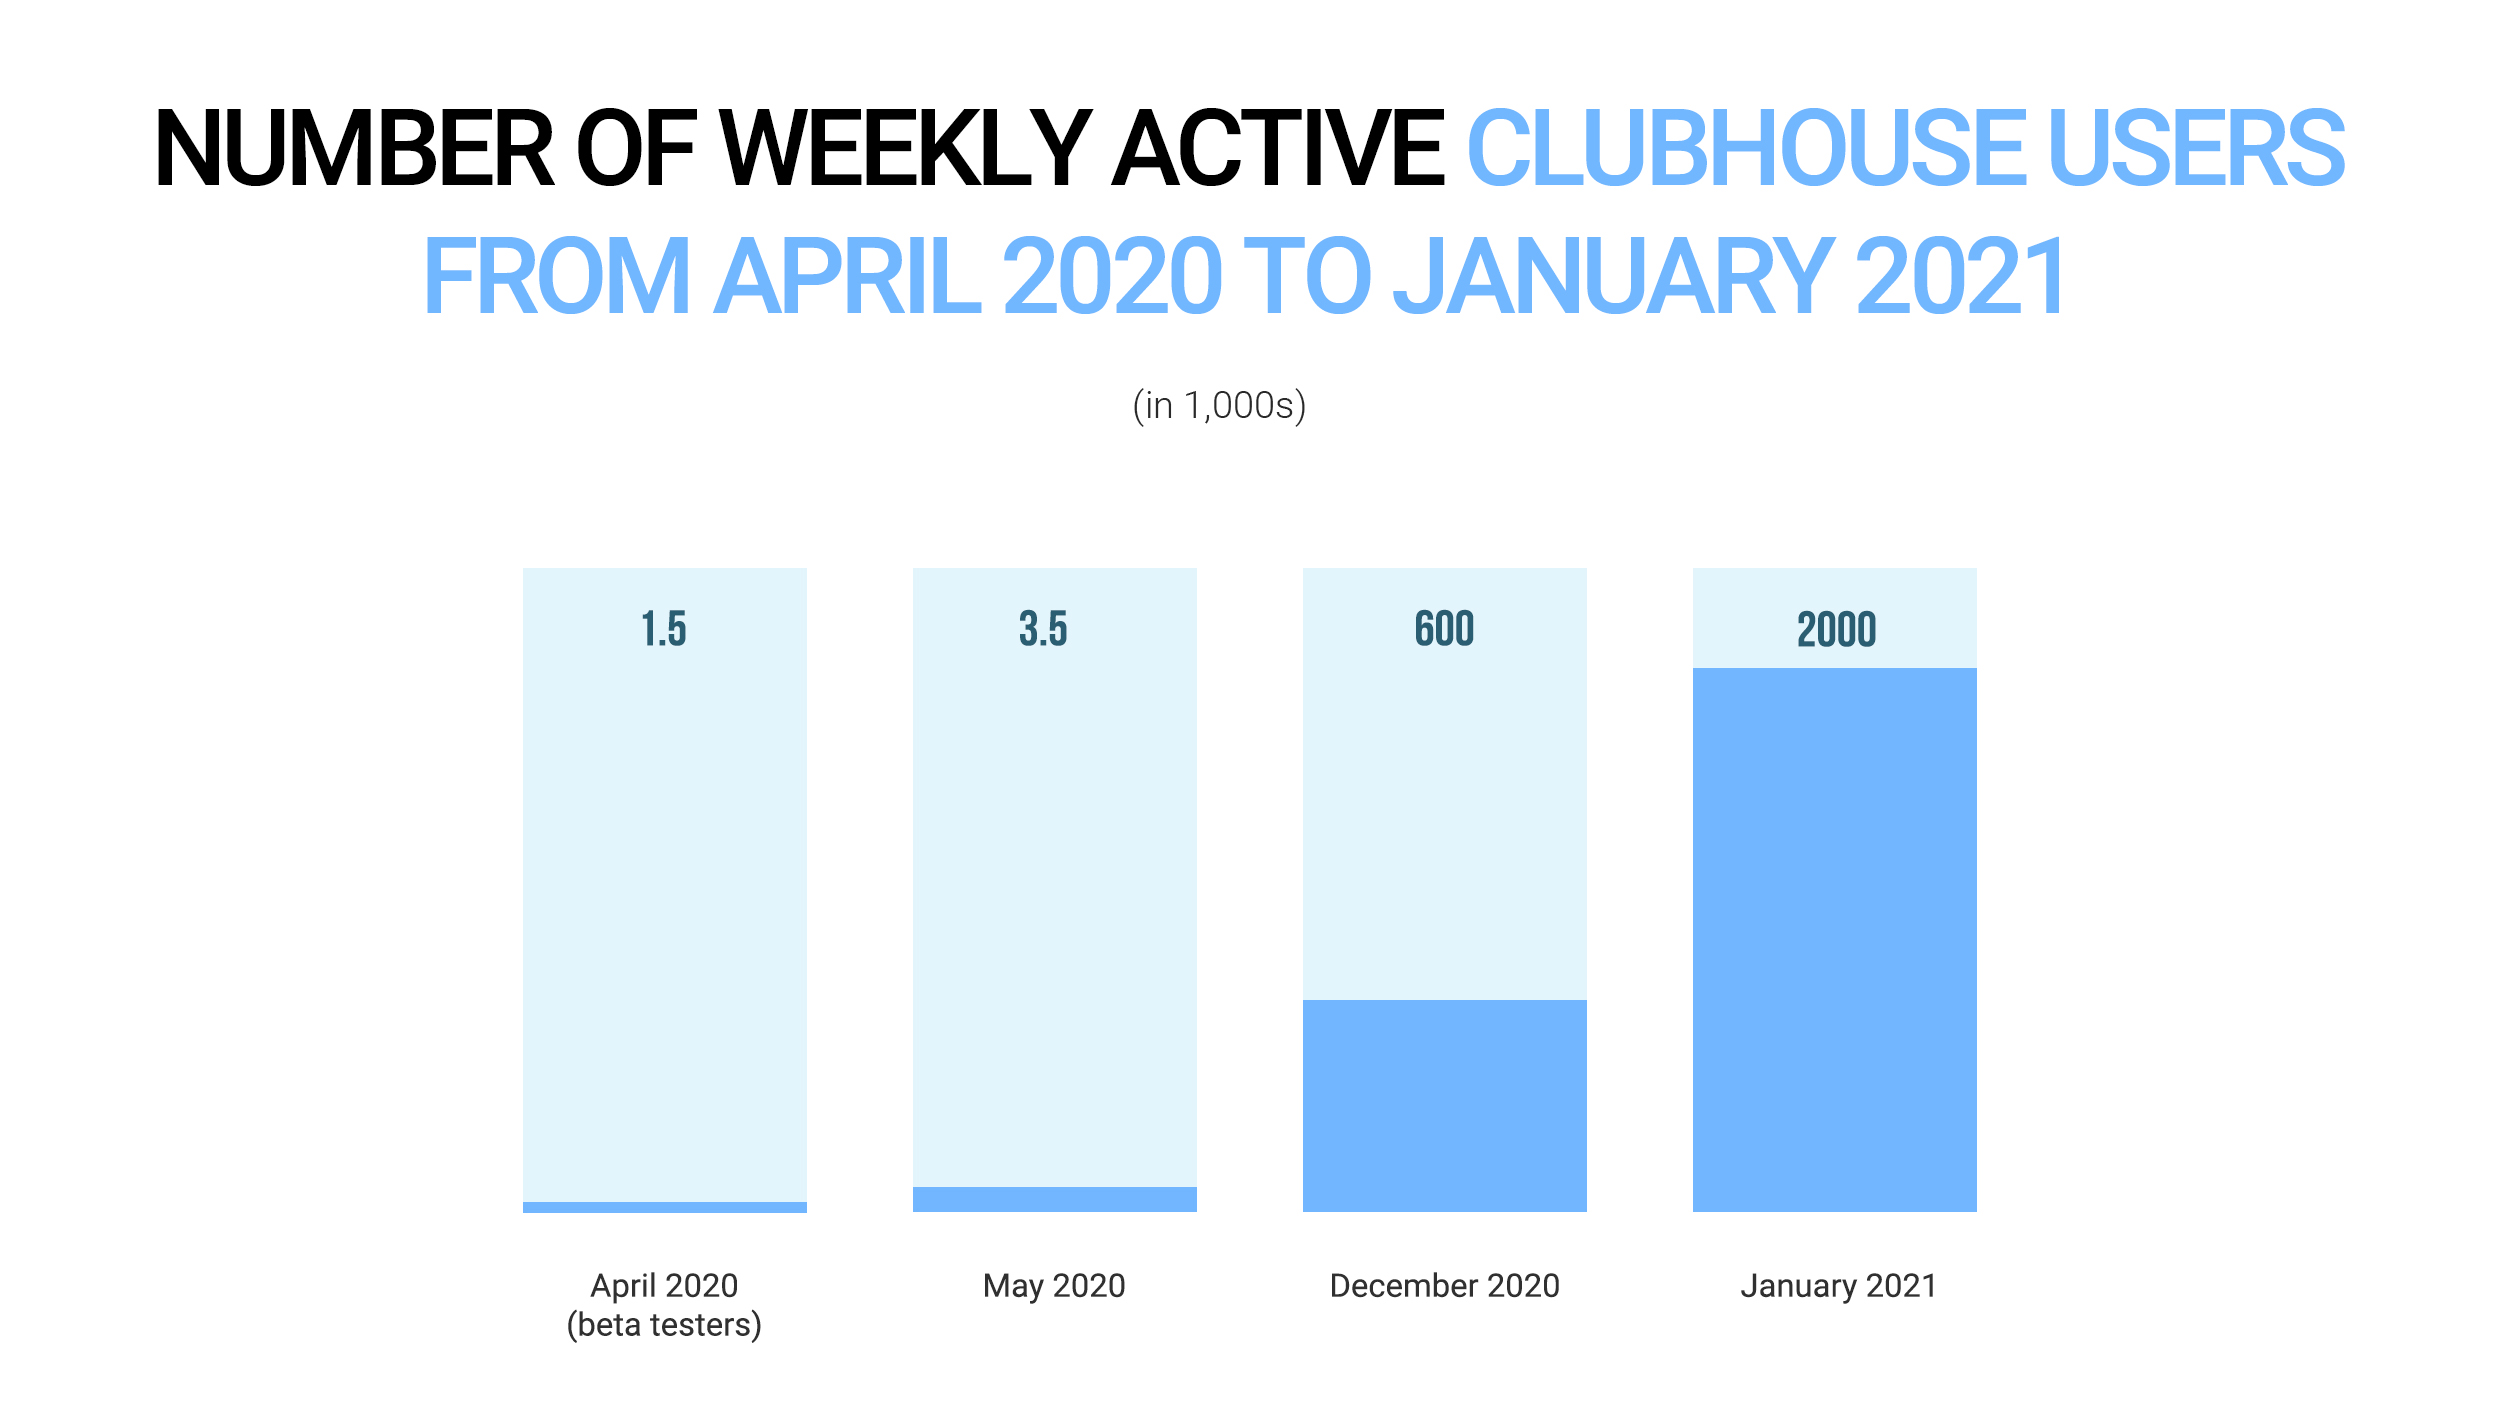 Number of weekly active Clubhouse users from April 2020 to January 2021